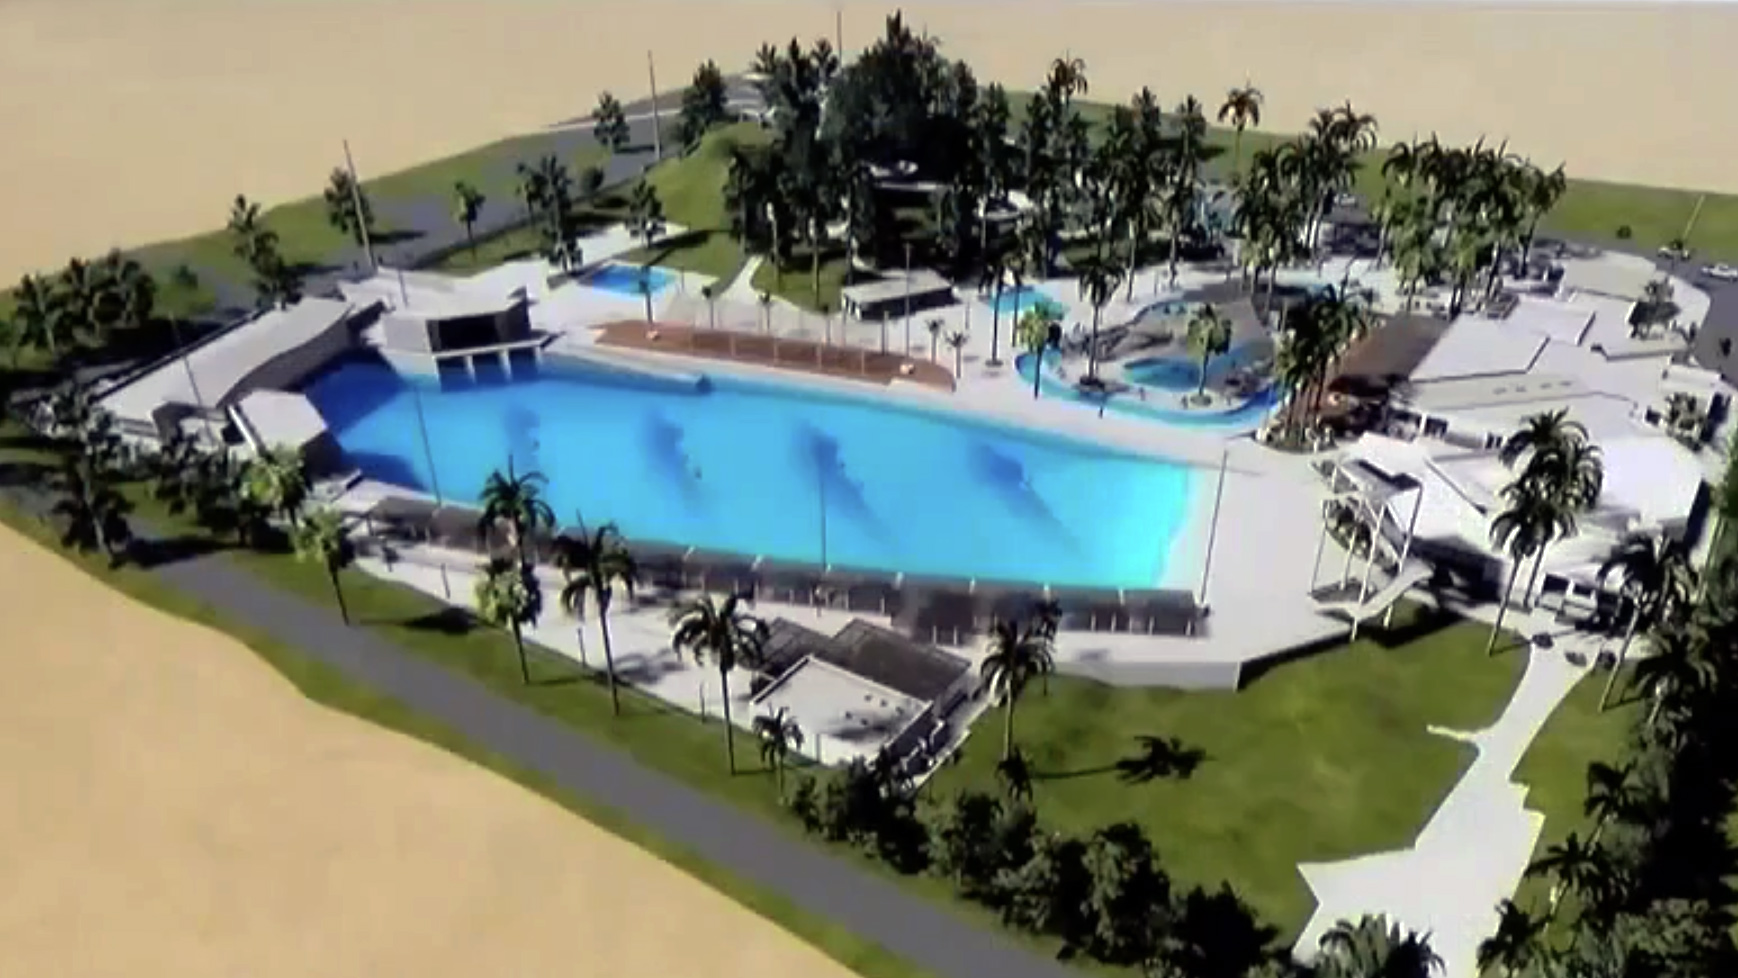 palm springs surf club plans